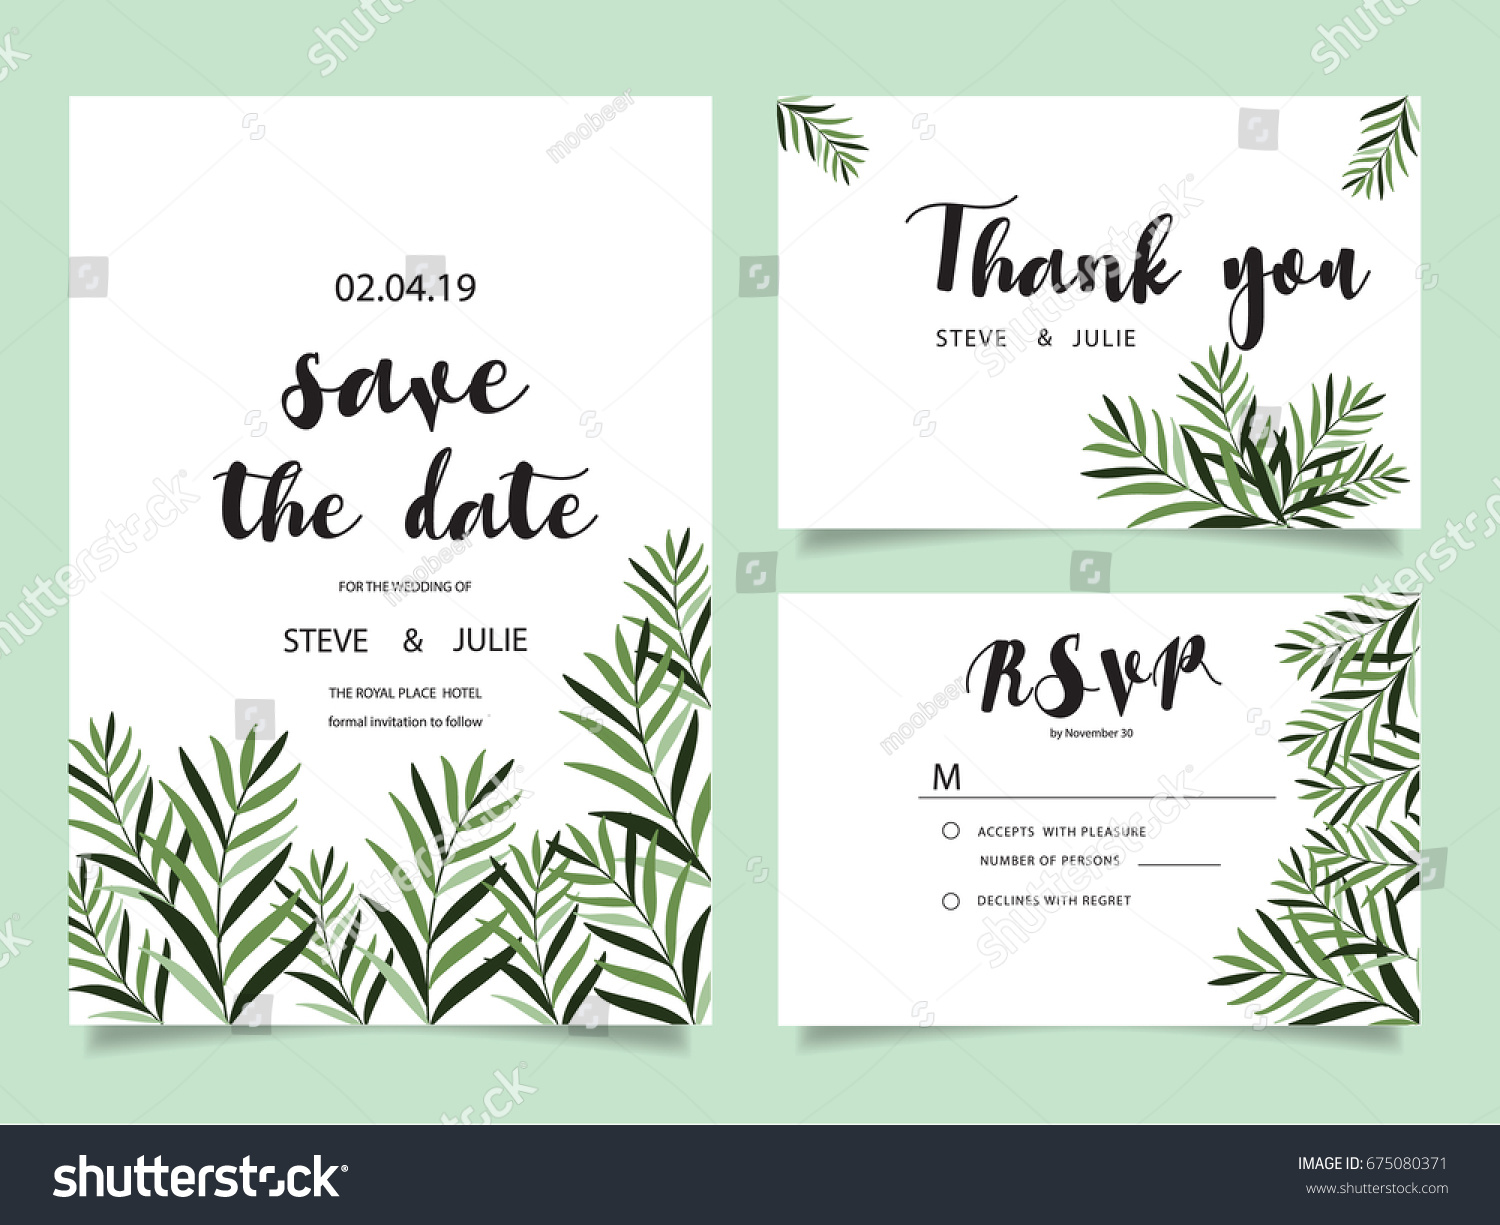 Wedding invitation card template text stock vector 675080371 wedding invitation card template with text stopboris Choice Image